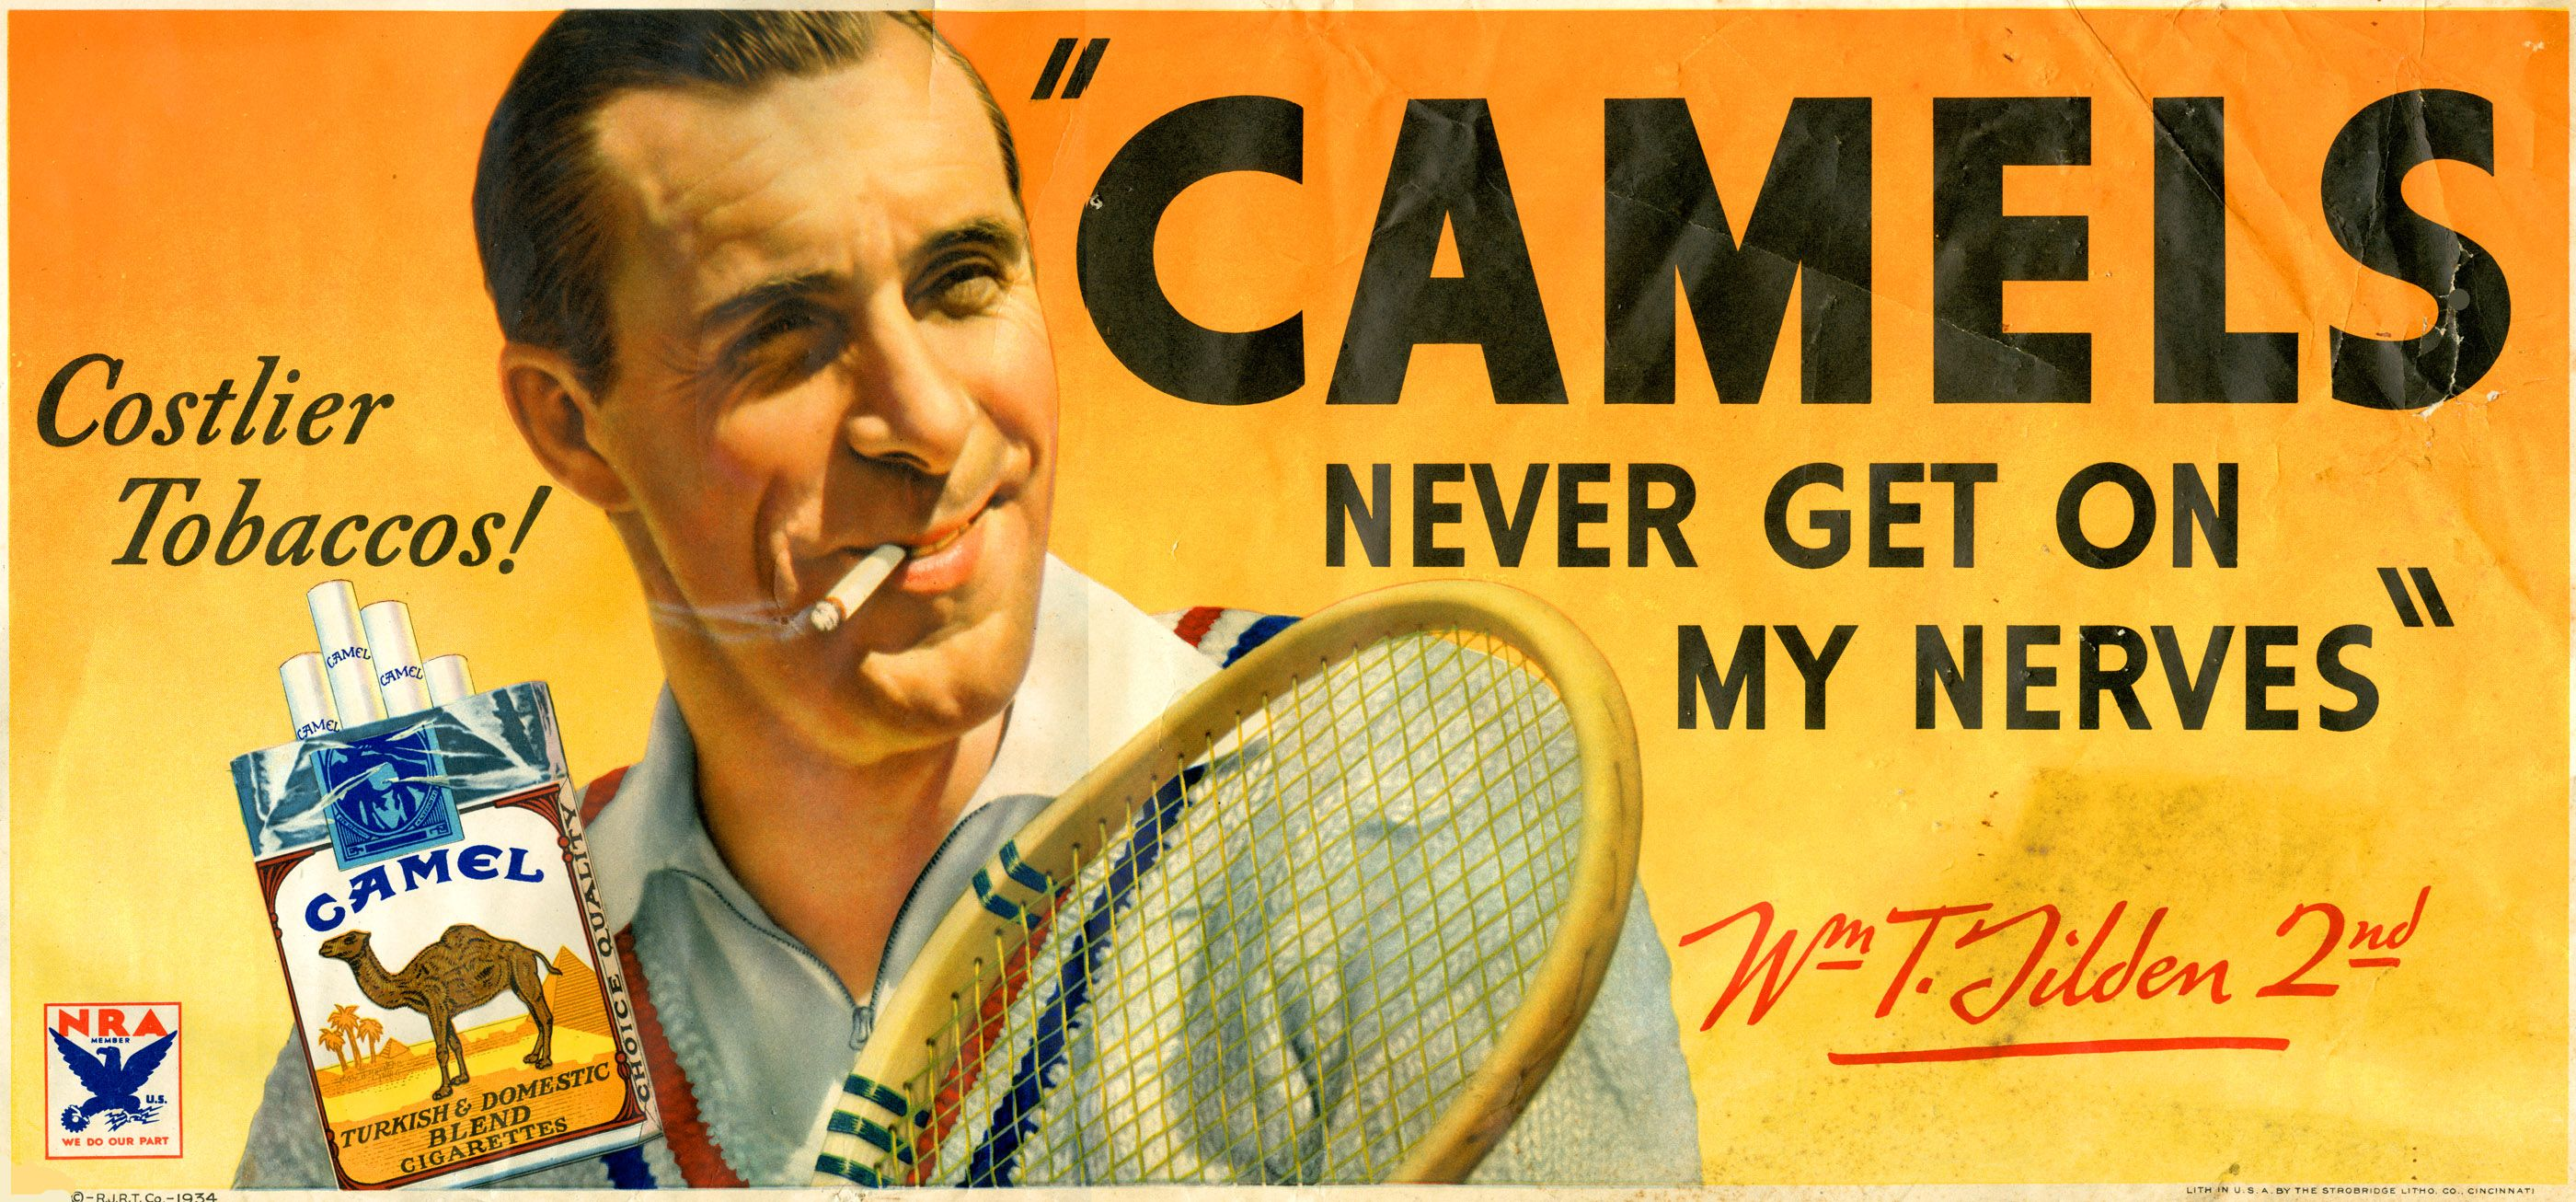 vintage tobacco ads - Google Search | Vintage Tobacco Ads ...